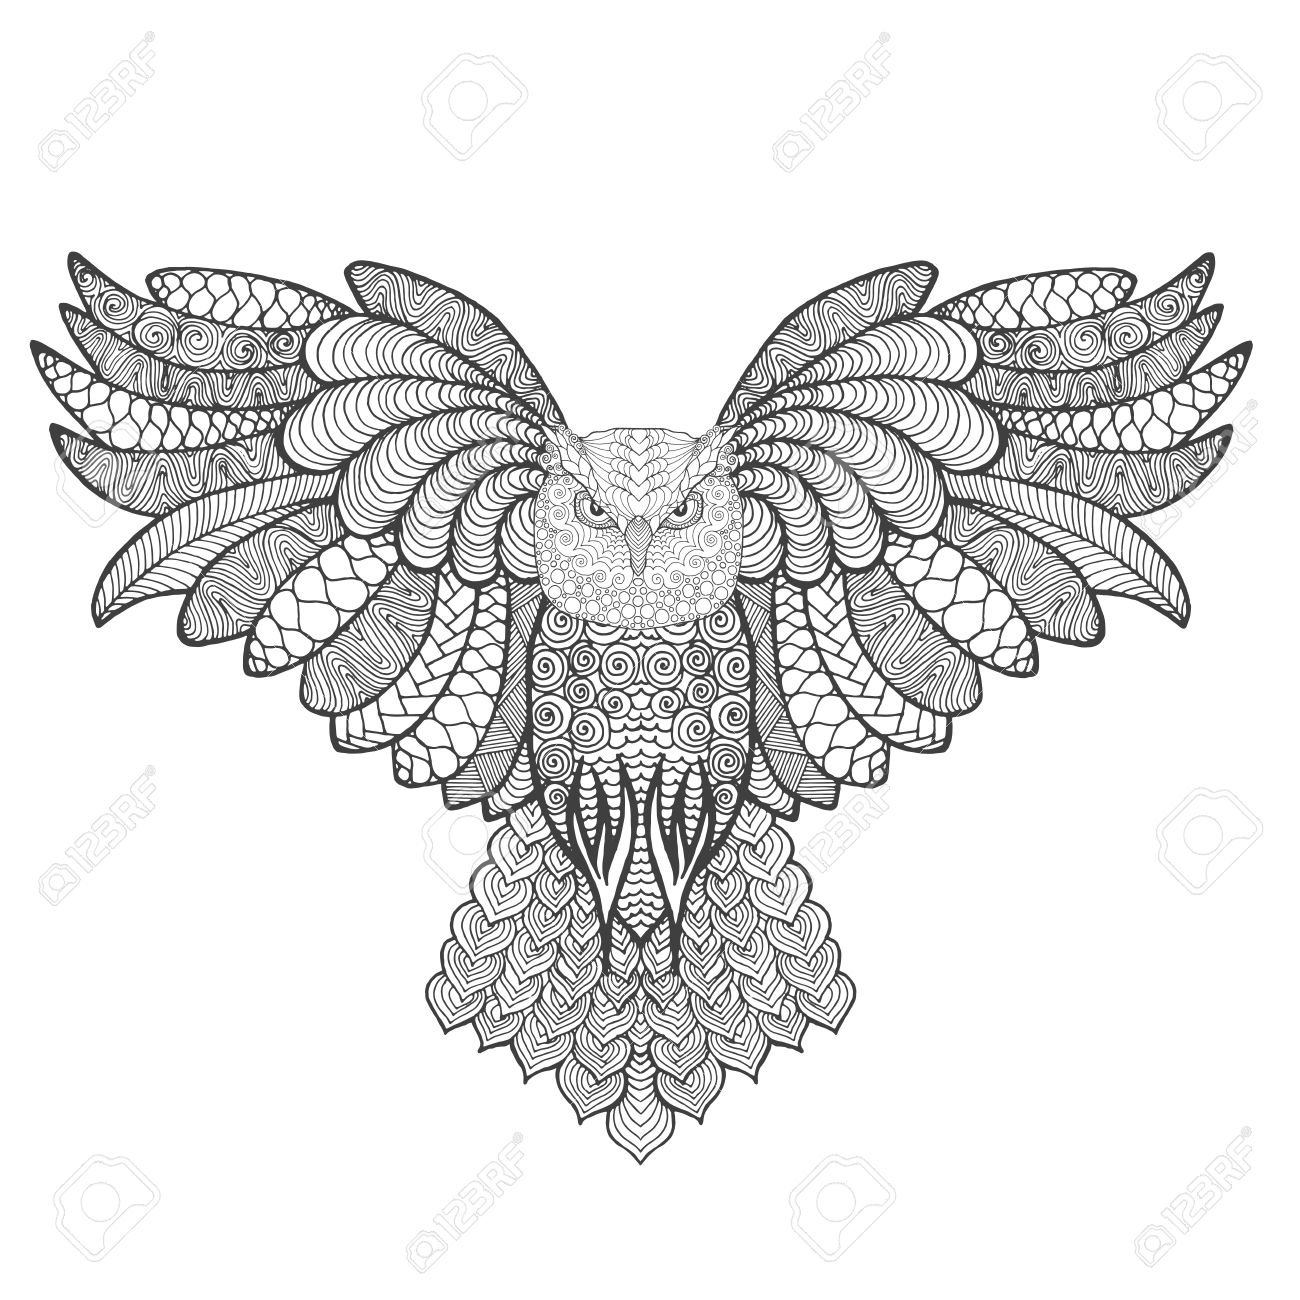 Eagle Owl Adult Antistress Coloring Page Black White Hand Drawn Doodle Animal Ethnic